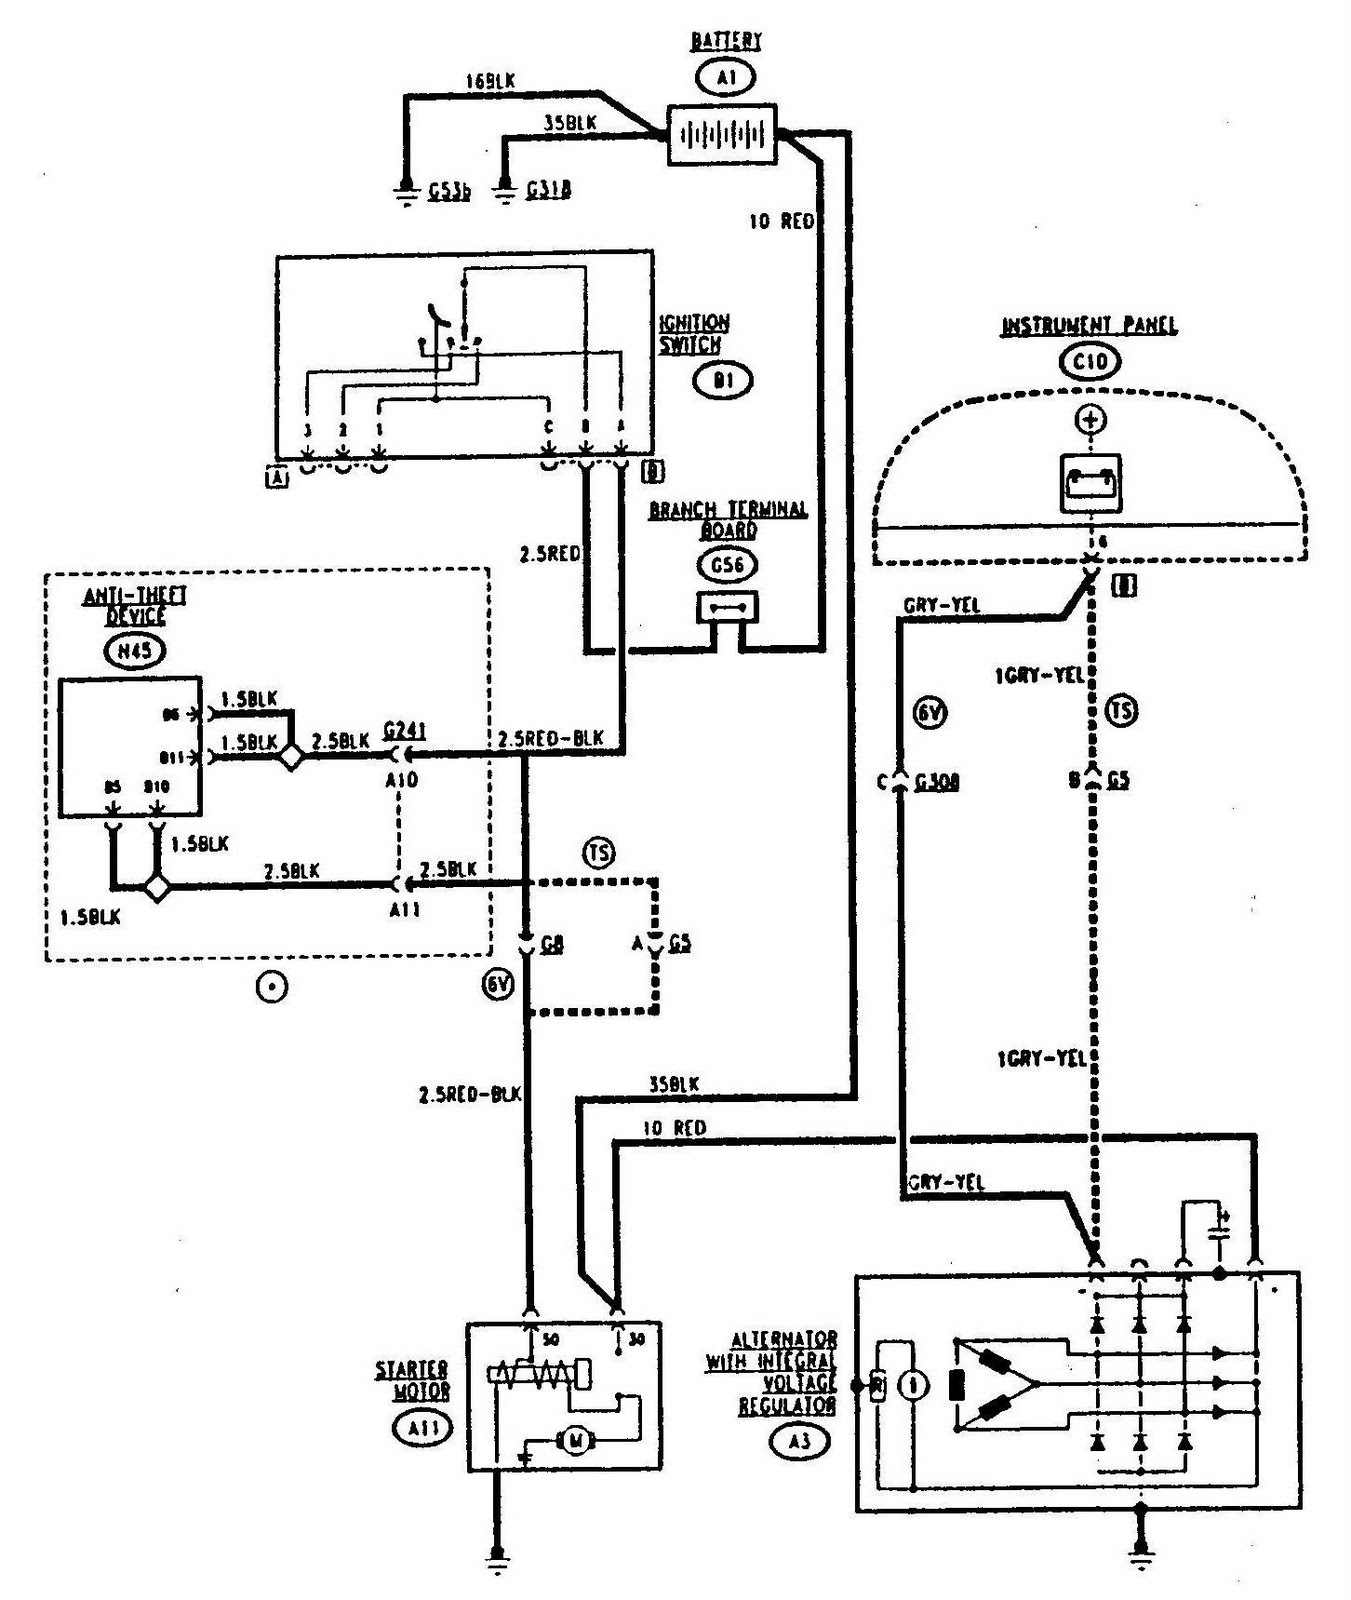 1351x1600 alfa romeo 155 starting and charging circuit diagram wiringdiagrams